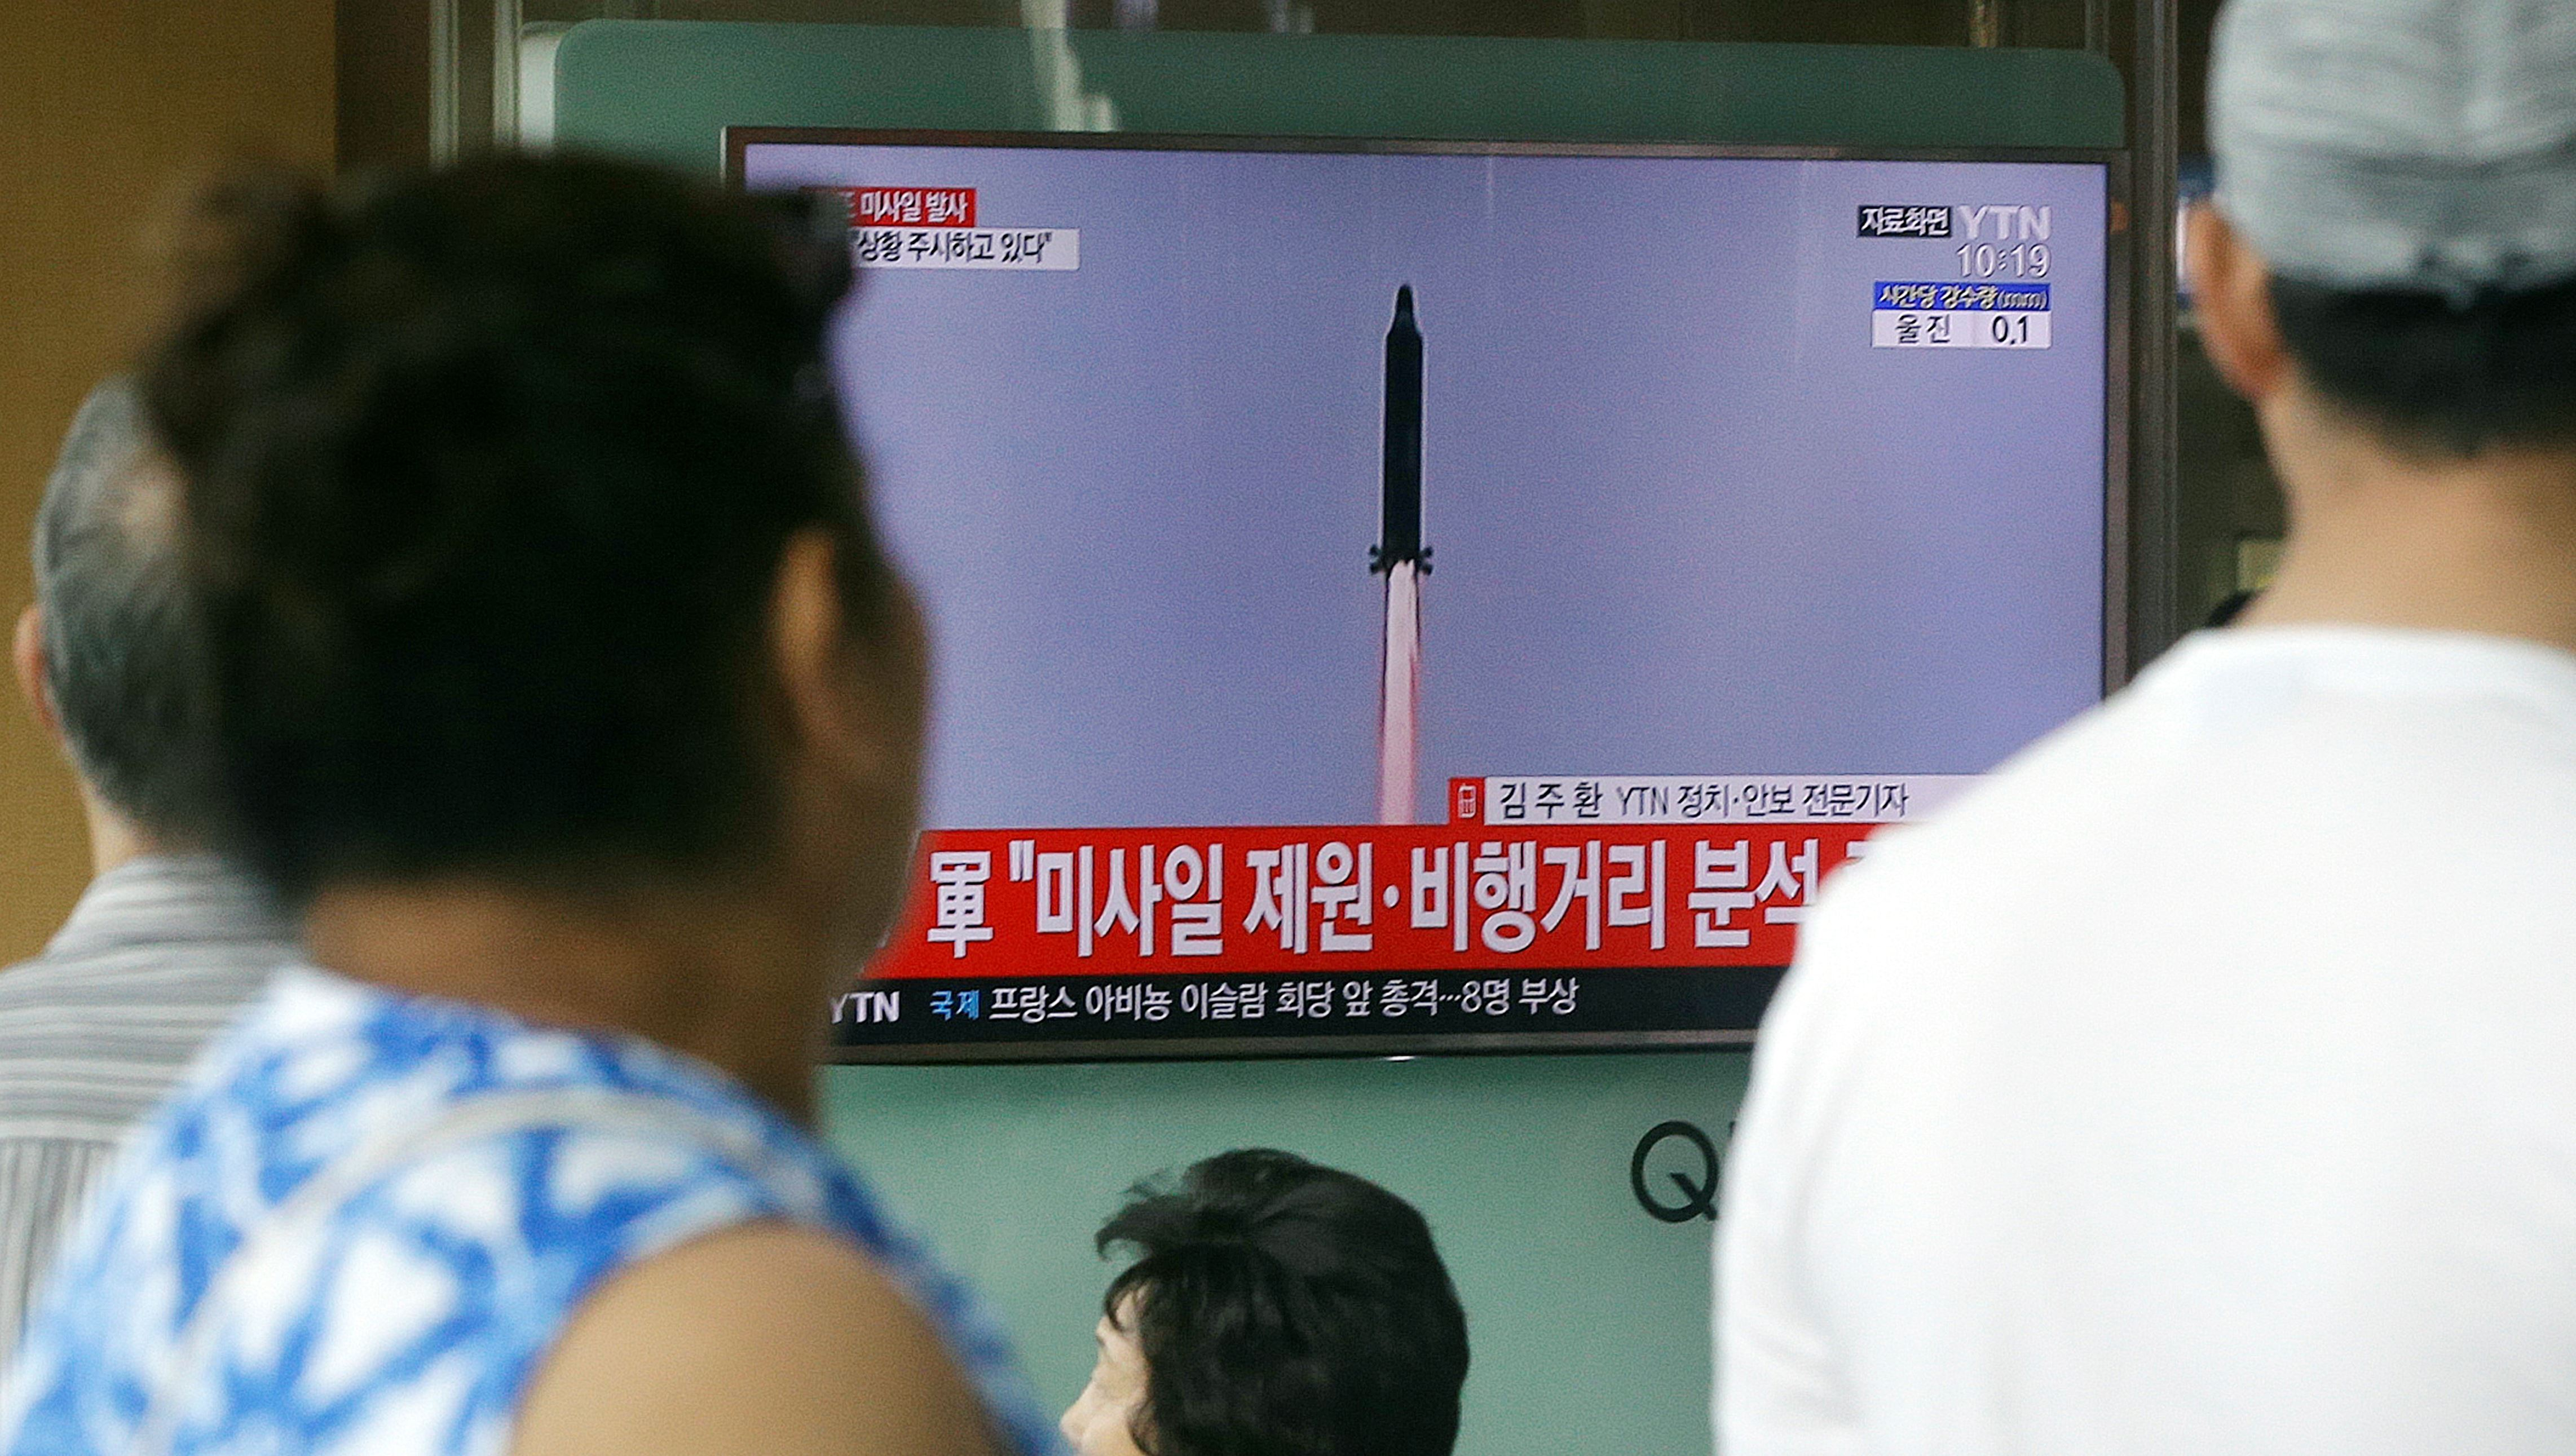 Japan detects radio signals pointing to possible N. Korea missile test: source